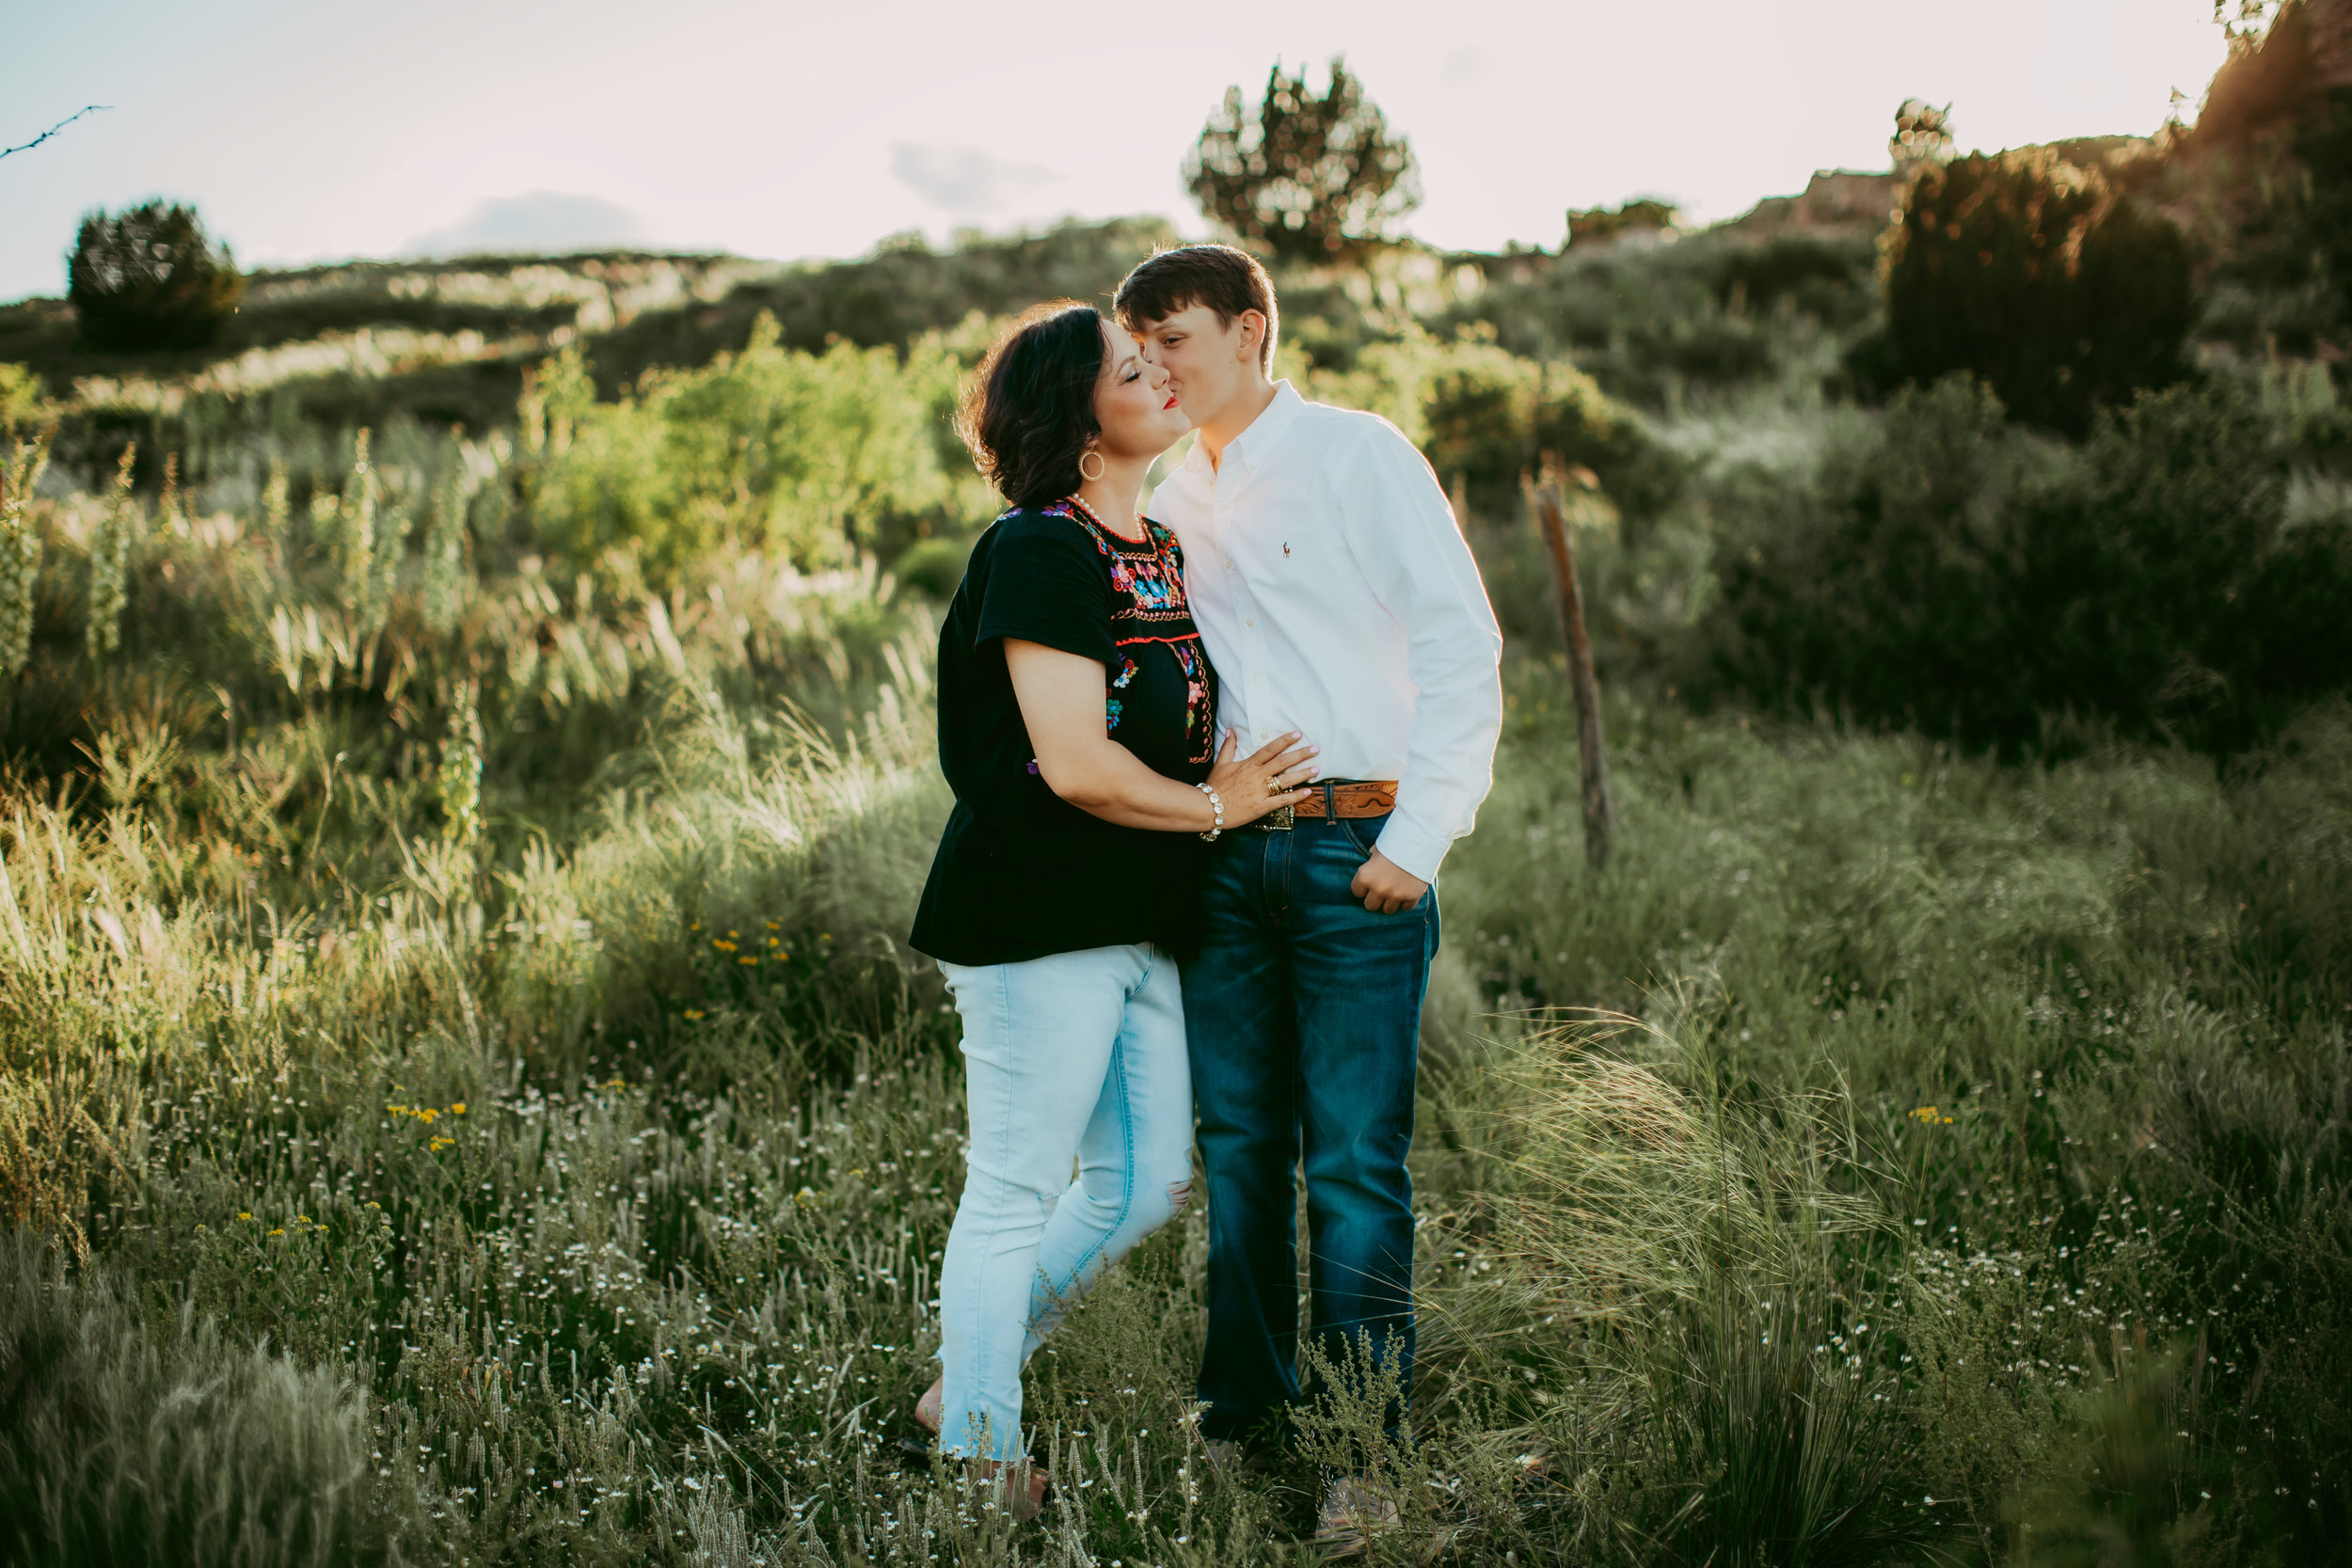 Son kissing his mom on the cheek with the sun setting behind the family ranch behind them #tealawardphotography #texasfamilyphotographer #amarillophotographer #amarillofamilyphotographer #lifestylephotography #emotionalphotography #familyphotosoot #family #lovingsiblings #purejoy #familyphotos #familyphotographer #greatoutdoors